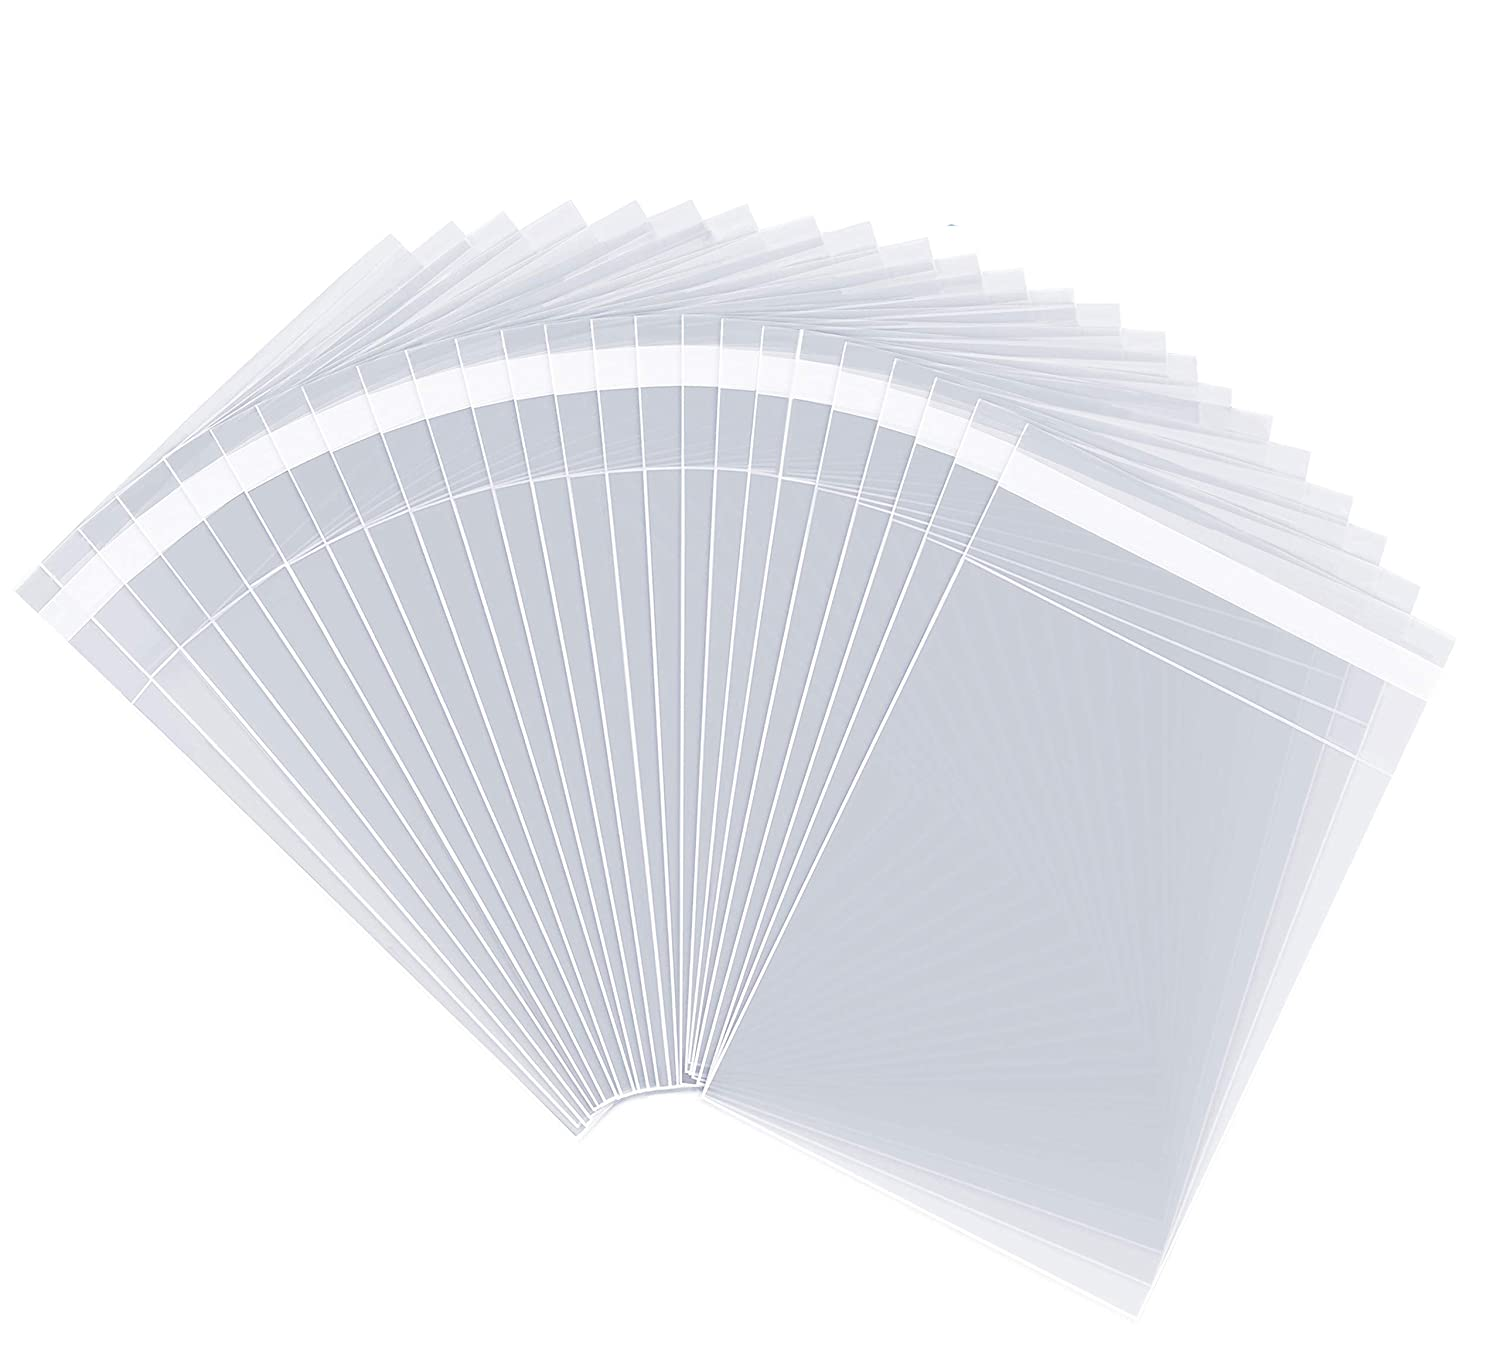 "5"" X 7"" (1000 Pack) Clear Resealable Cellophane Cello Bags Self Seal - Fits 5X7 Print Photos A2 A4 A6 Cards Envelopes & Baked Goods - Pack It Chic (More Sizes Available)"